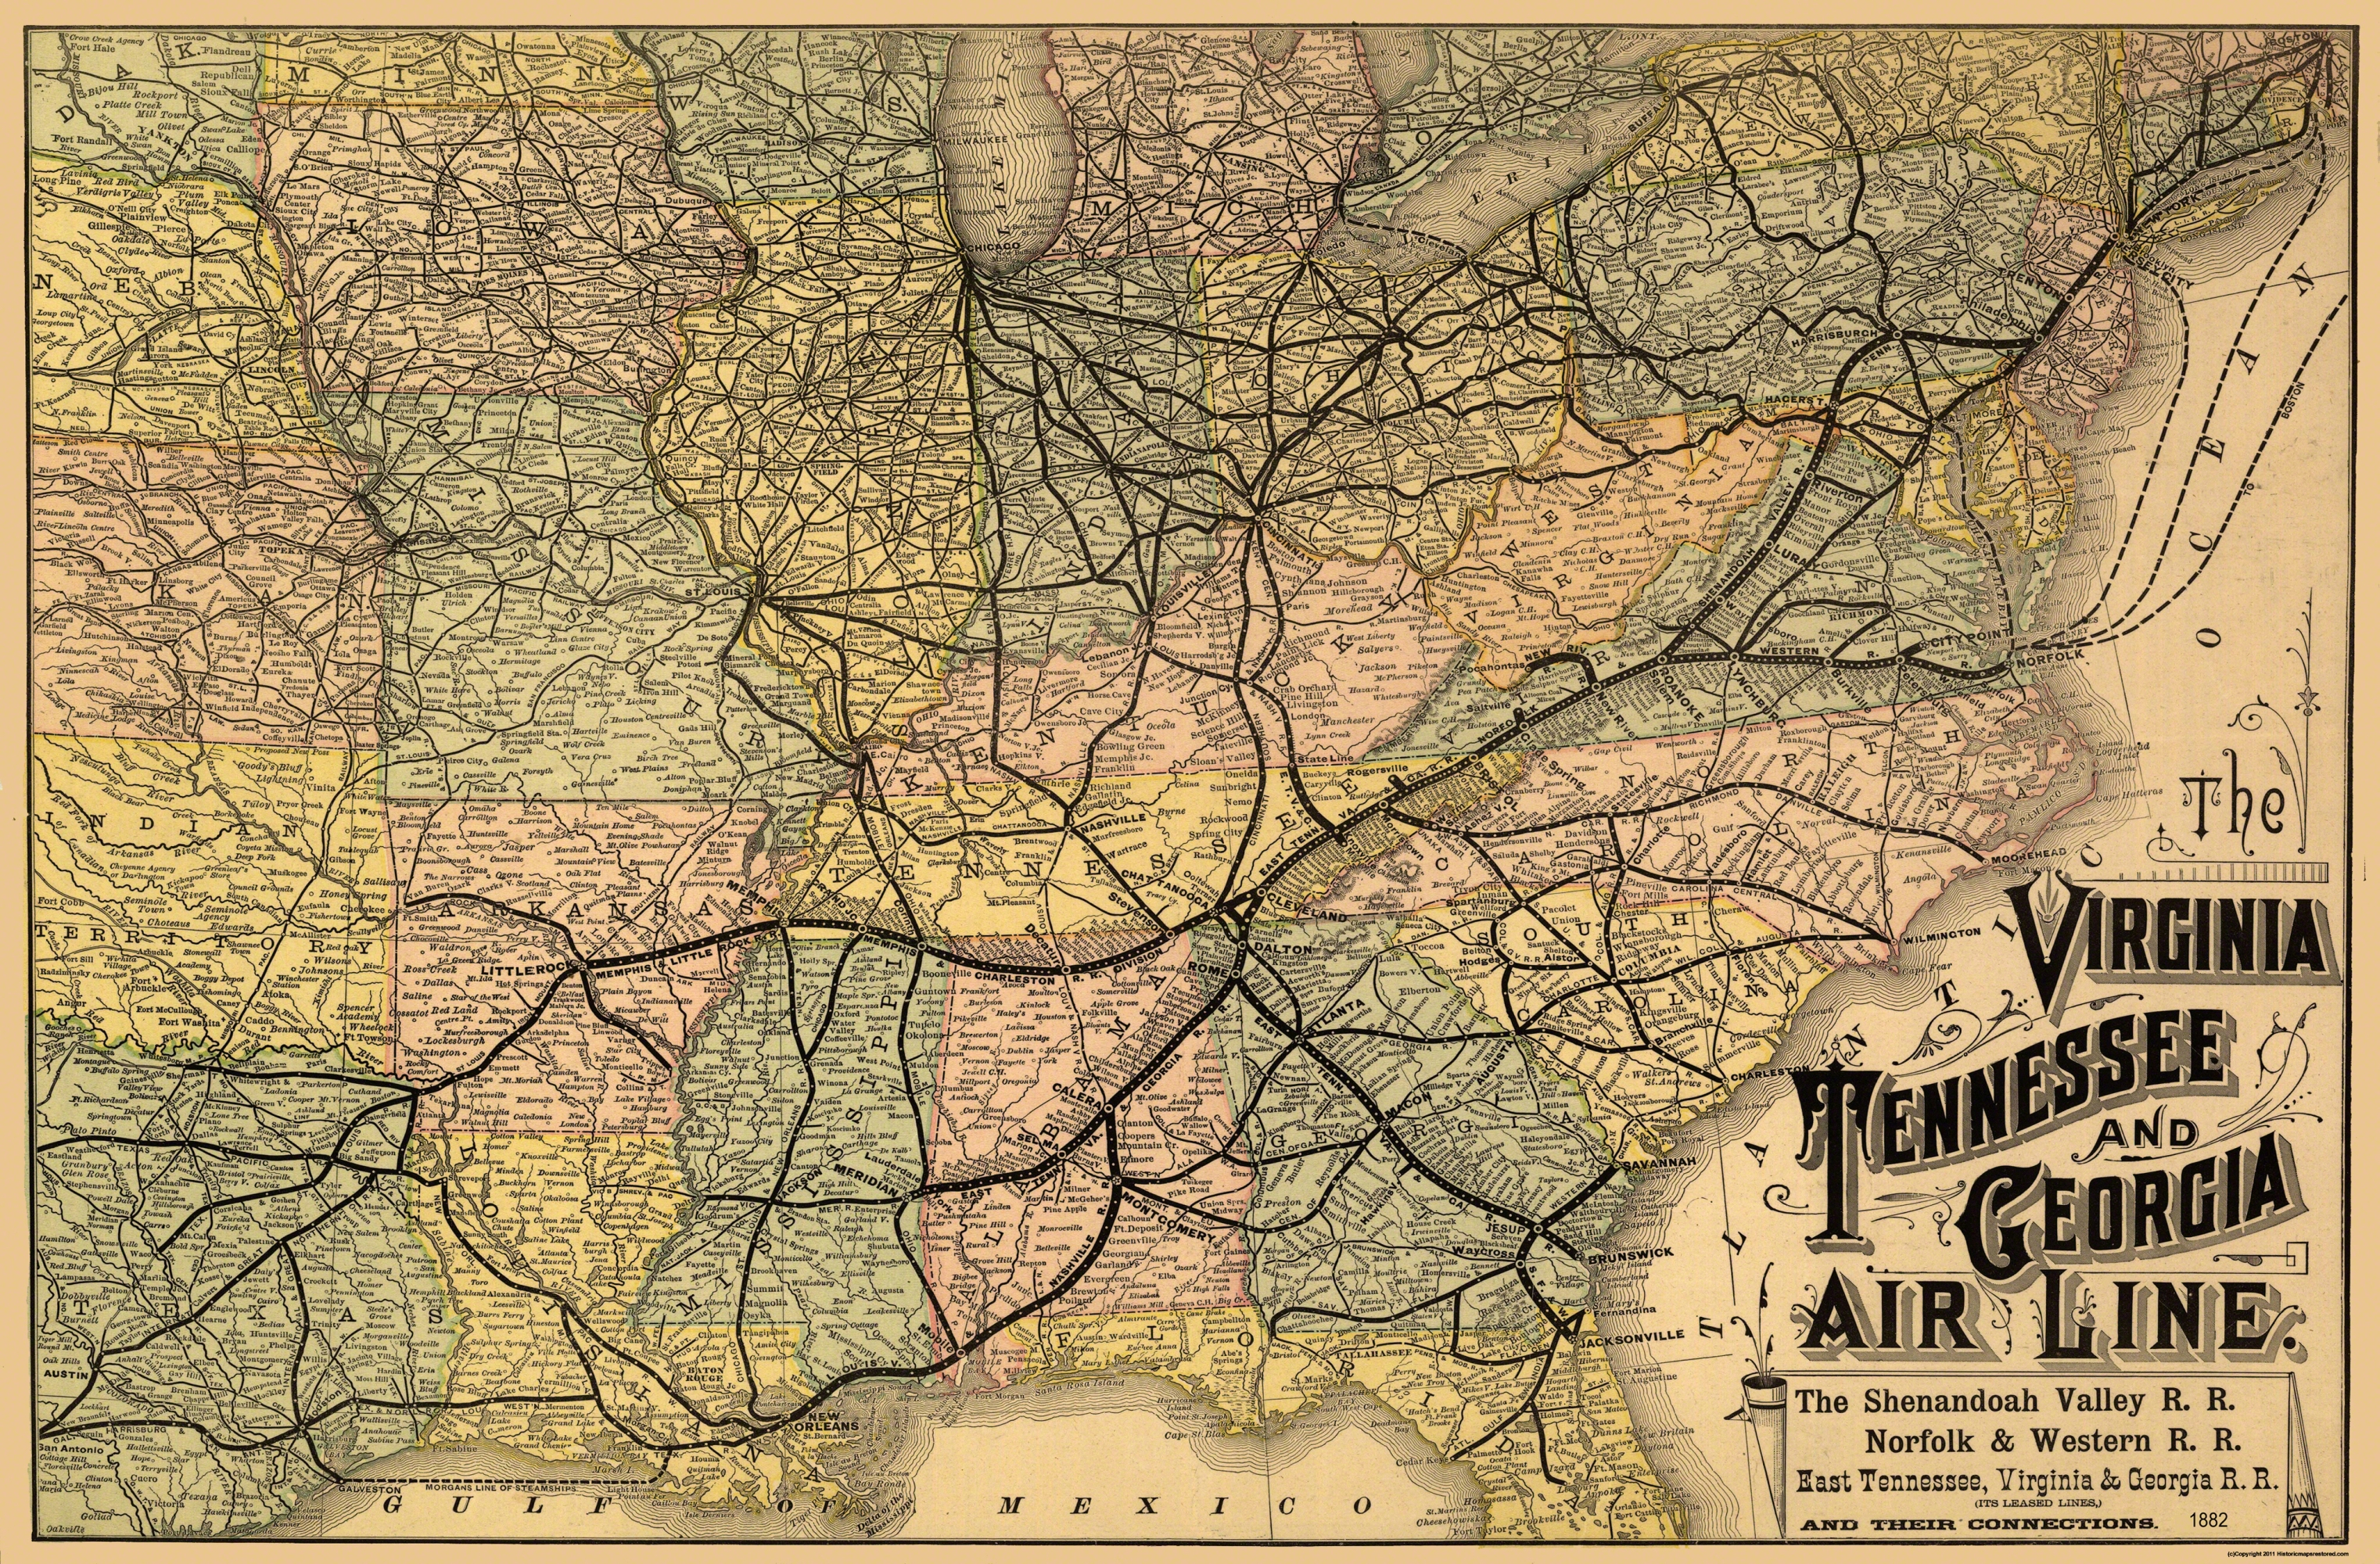 Old Railroad Map Virginia Tennessee Georgia 1882